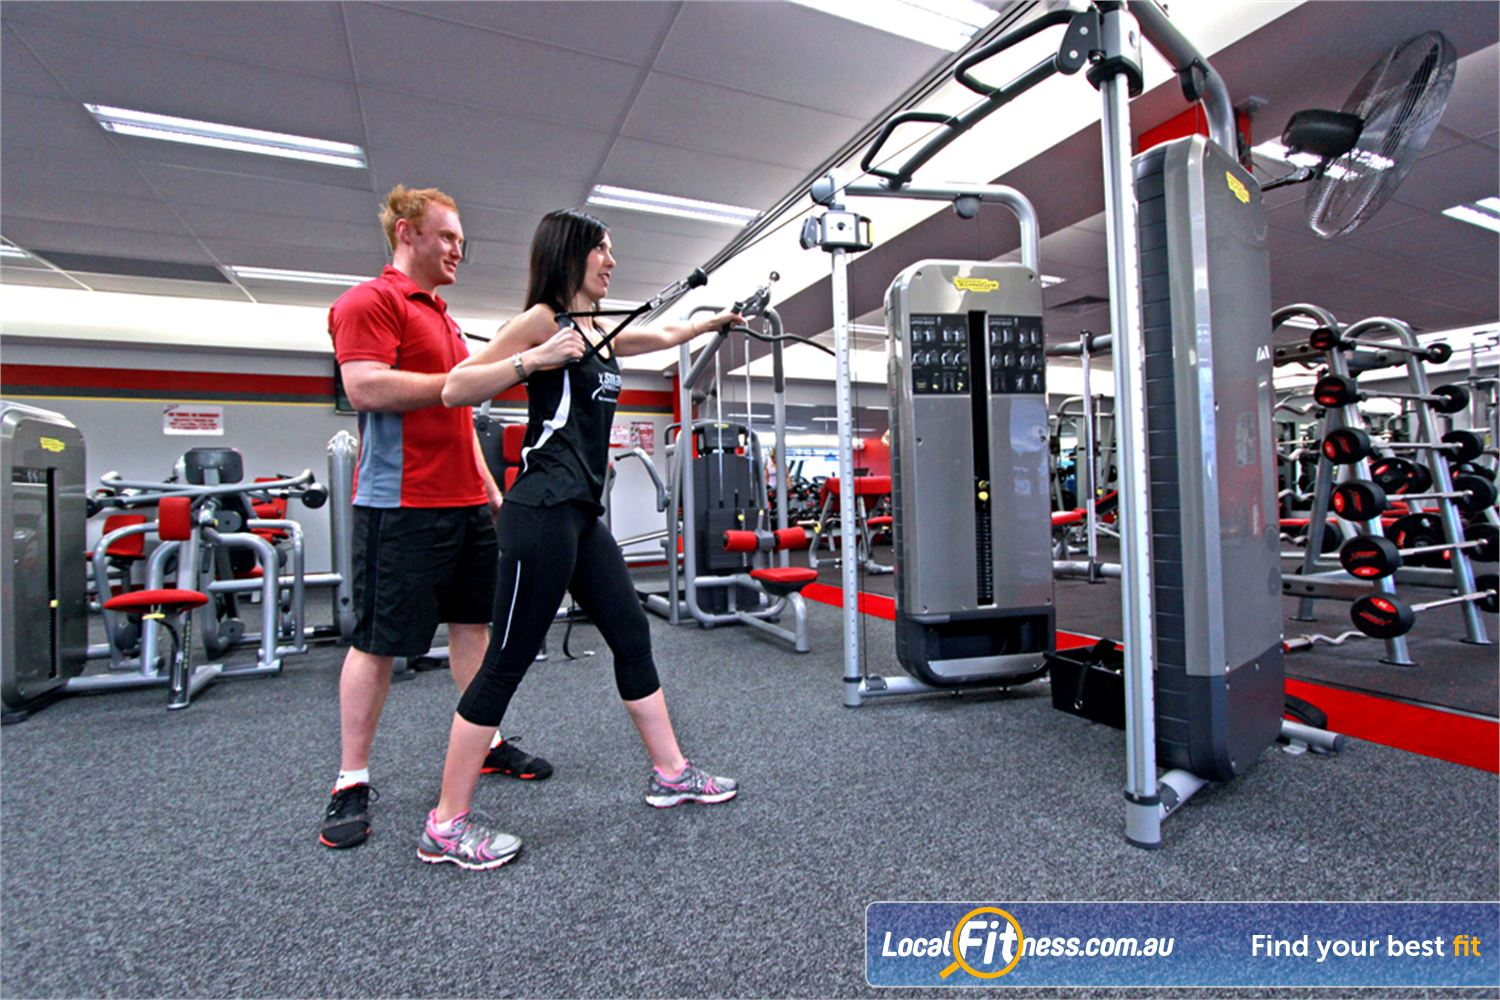 Snap Fitness Croydon Croydon personal trainers can tailor a strength program to suit you.